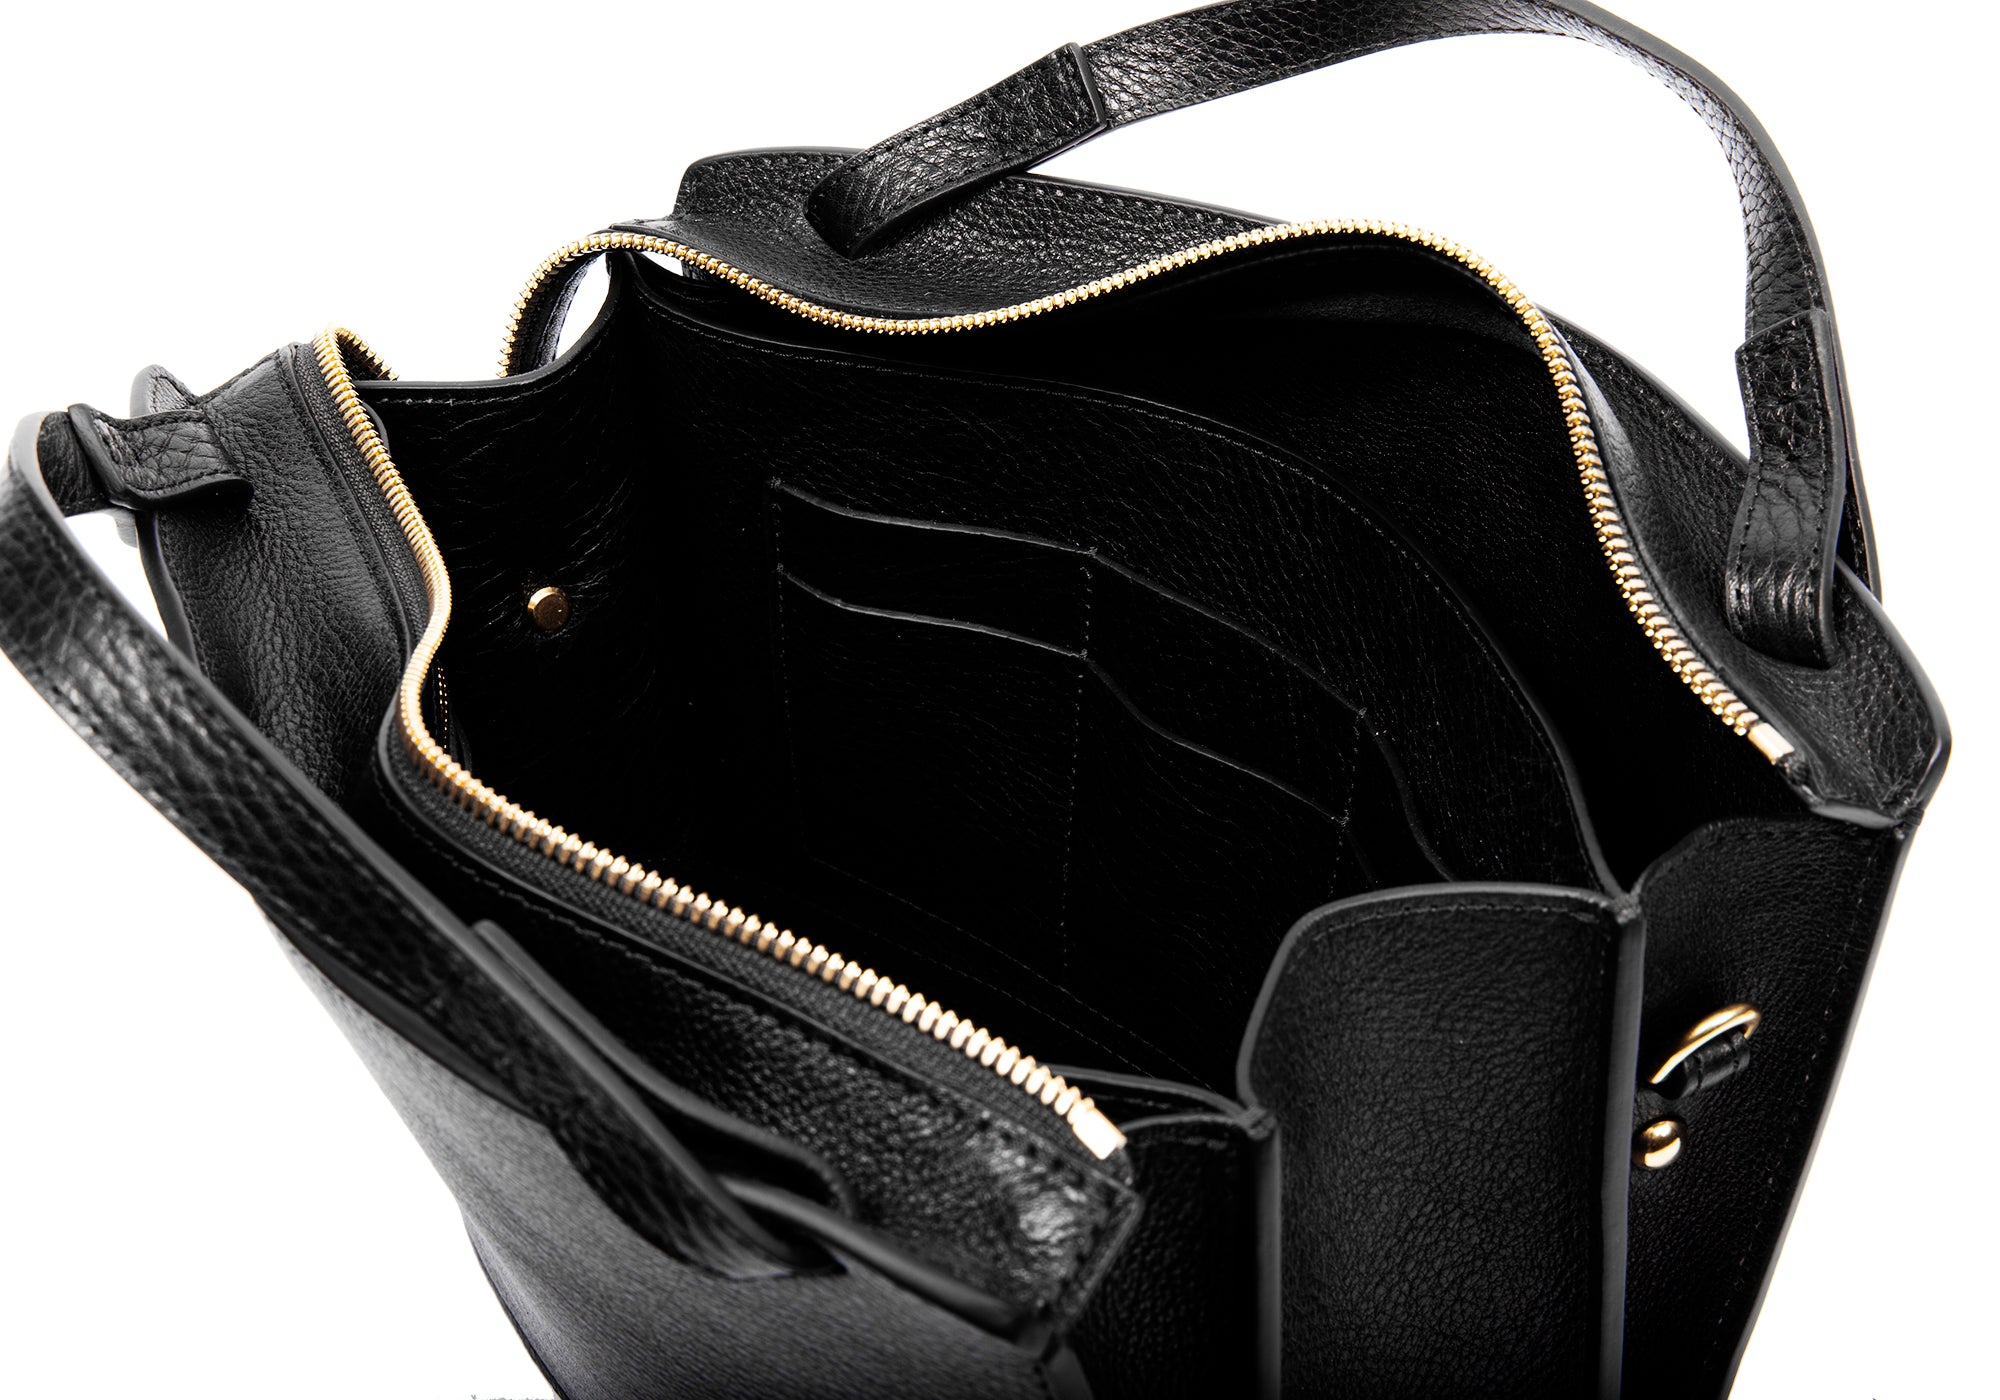 The Sol Handbag Black